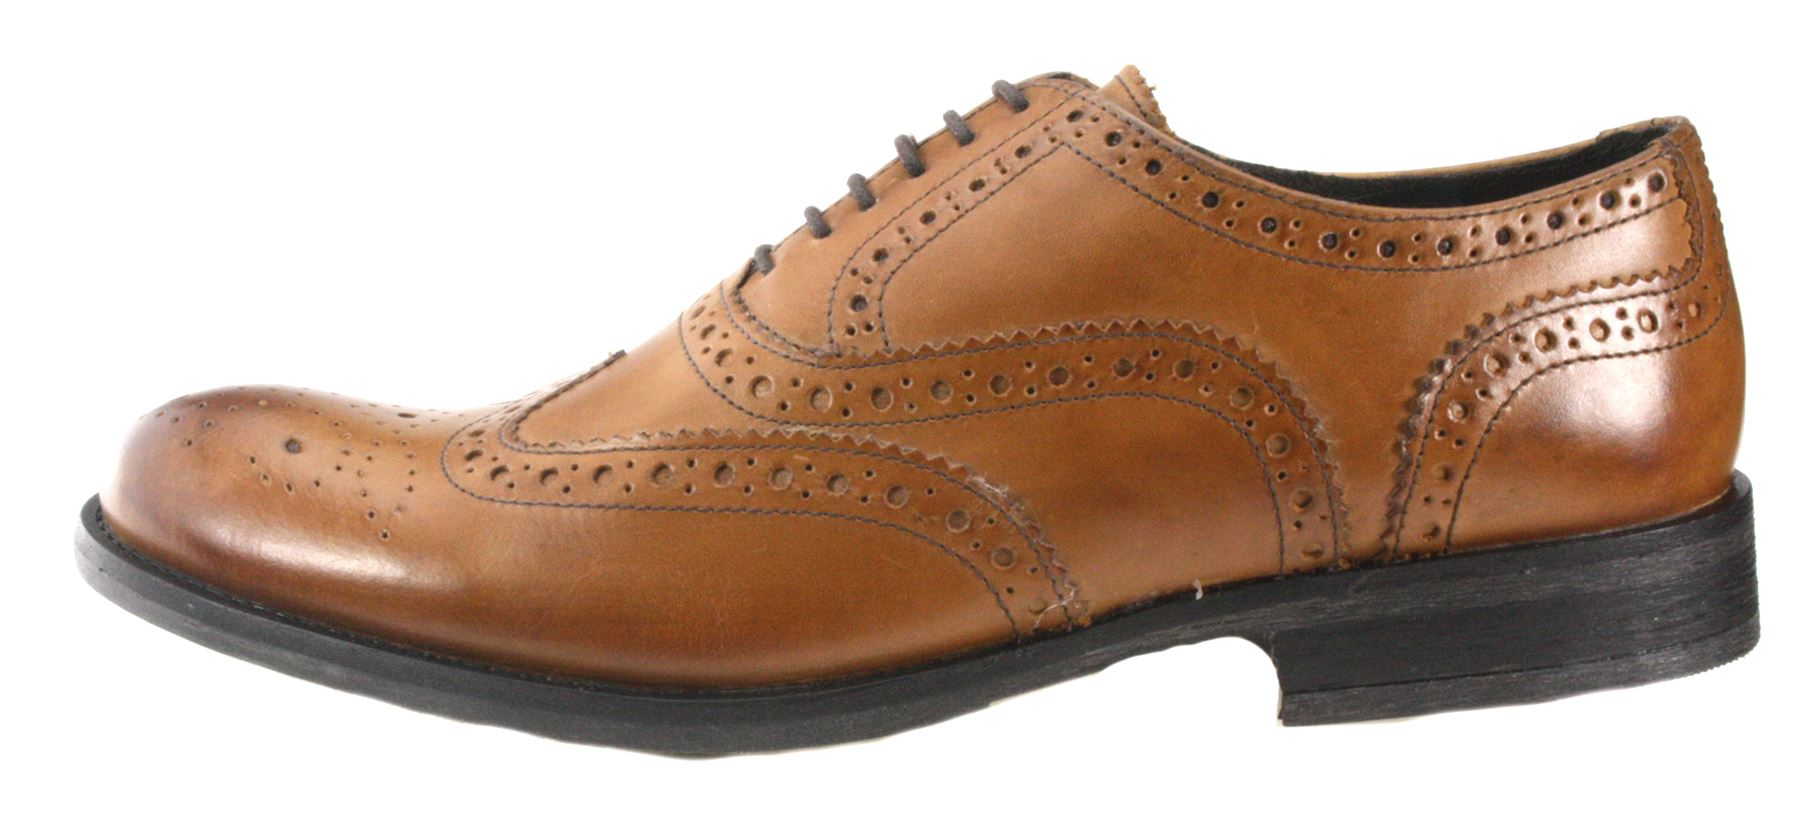 4977d388f01b Base London Mens Brogue lace up Tan Brown and Black Leather Formal ...